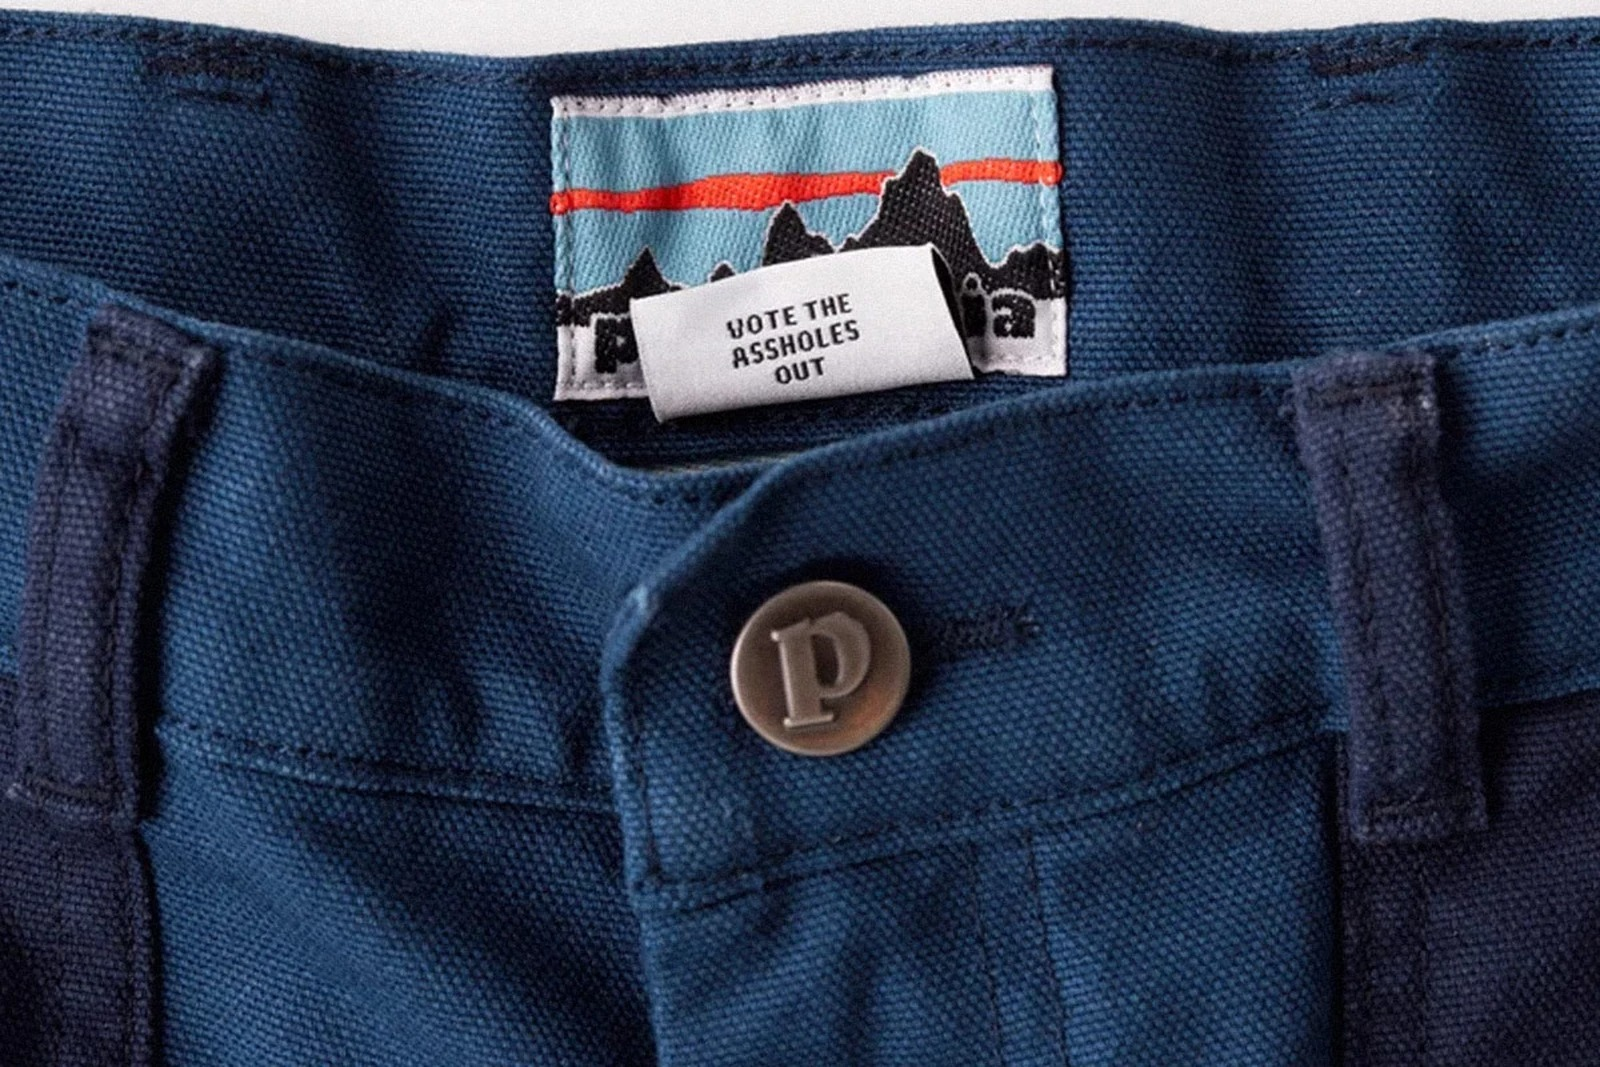 Patagonia clothing tag: Vote the assholes out